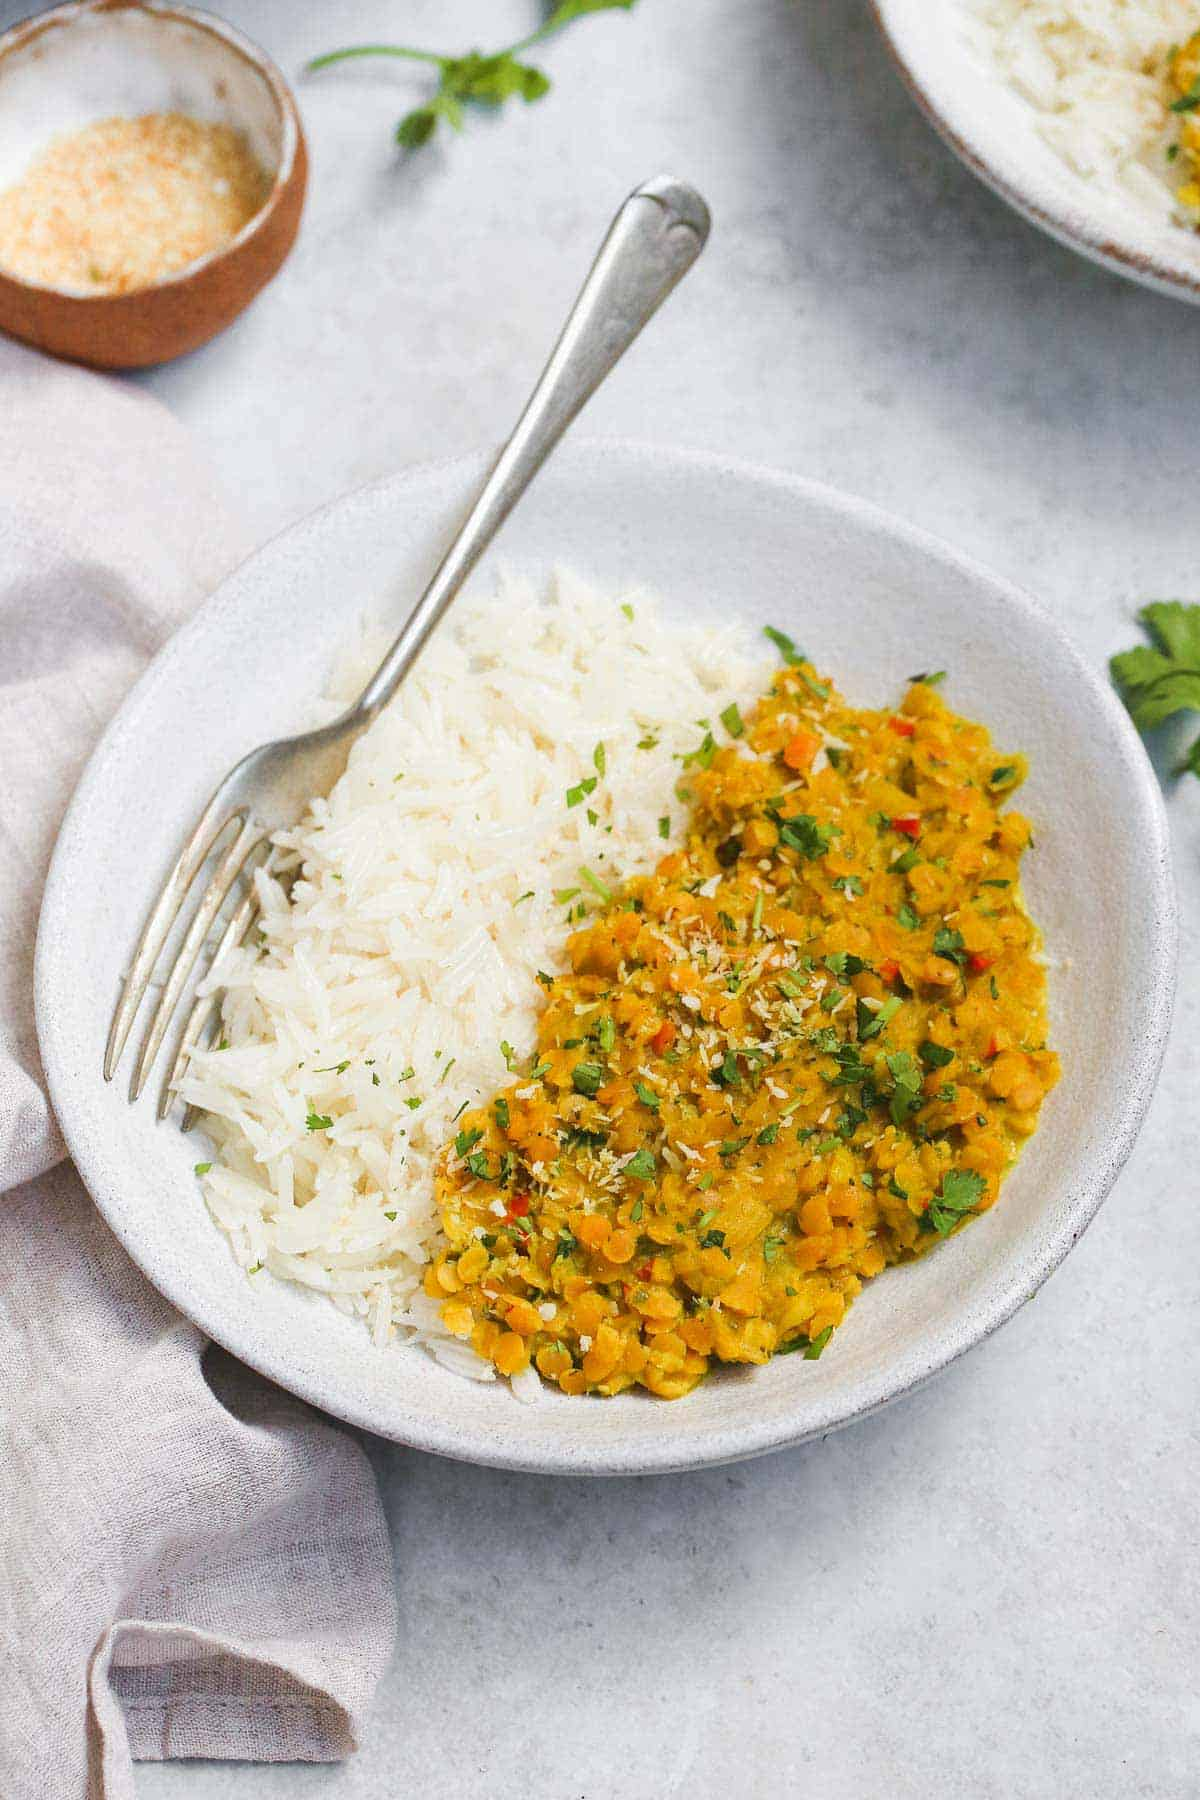 Lentil Dahl recipe served with Basmati rice